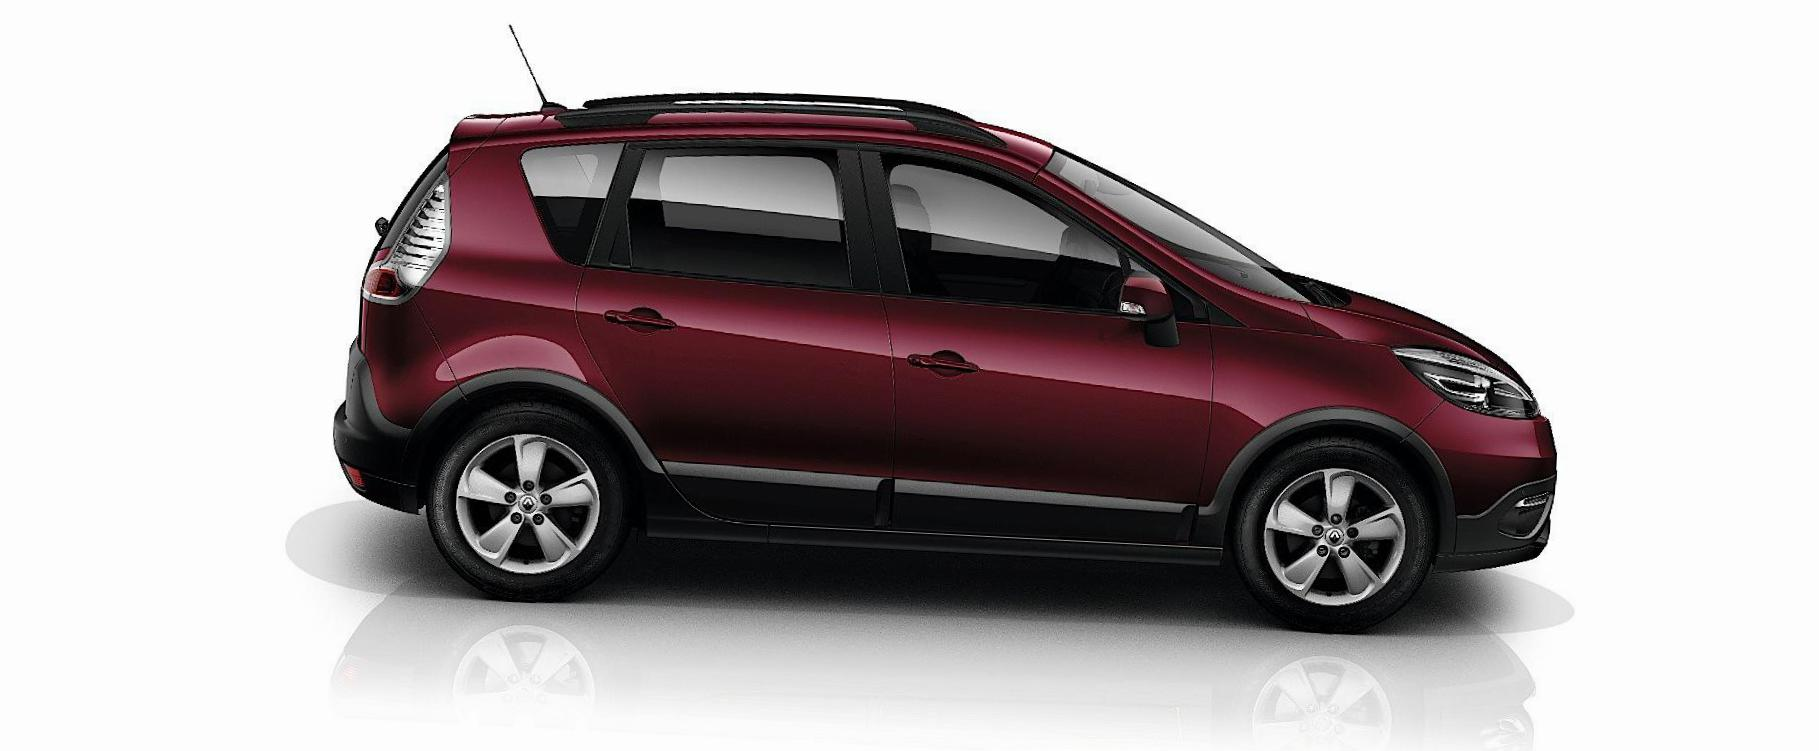 Renault Scenic Xmod Specification 2012